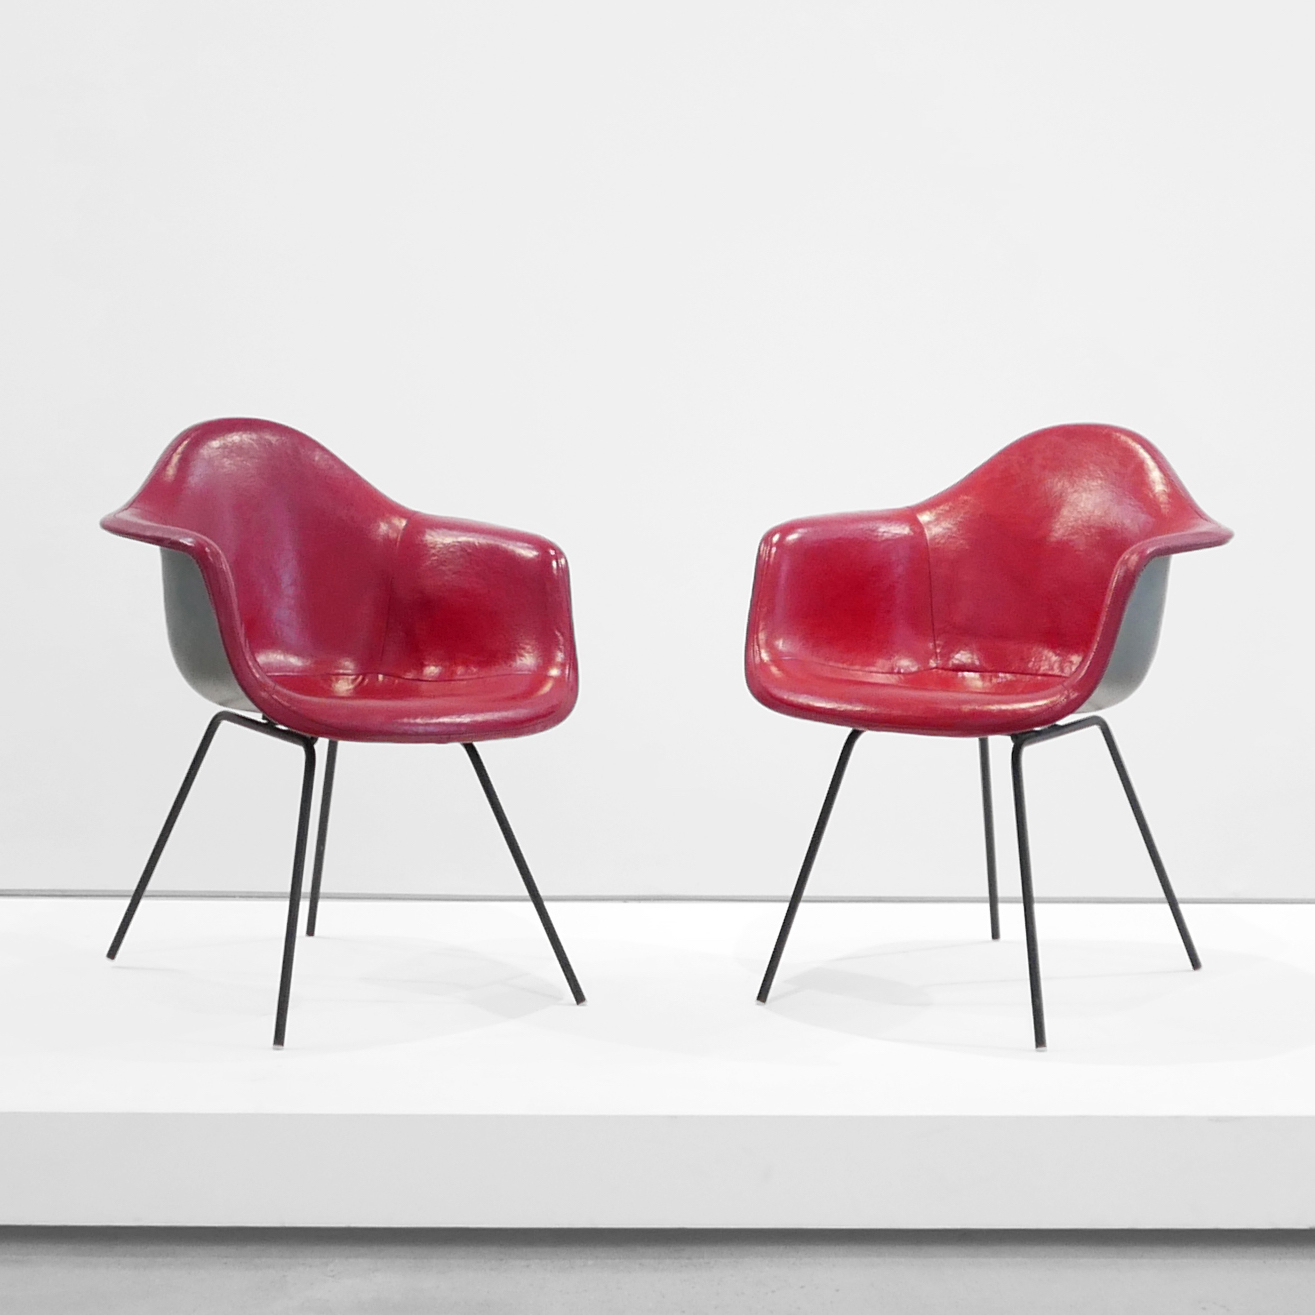 Charles and ray eames  pair of 'dax' chairs for herman miller  1954 ...